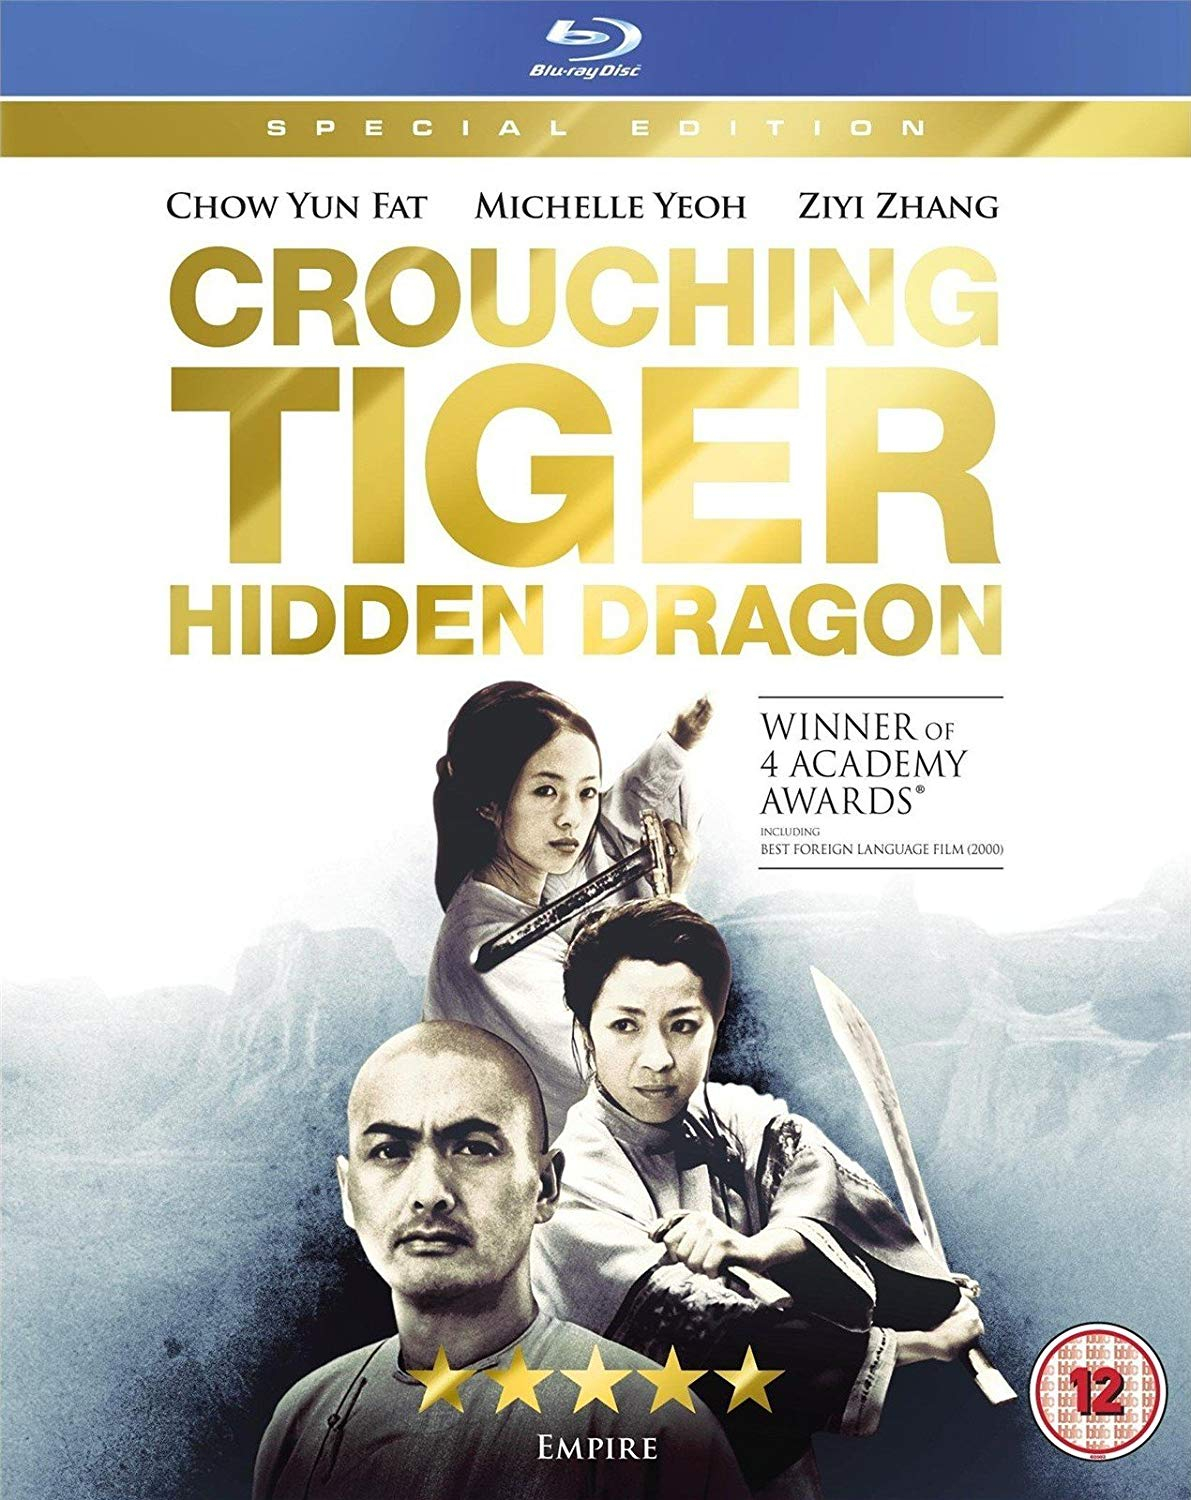 Buy Crouching Tiger, Hidden Dragon (Blu-ray)